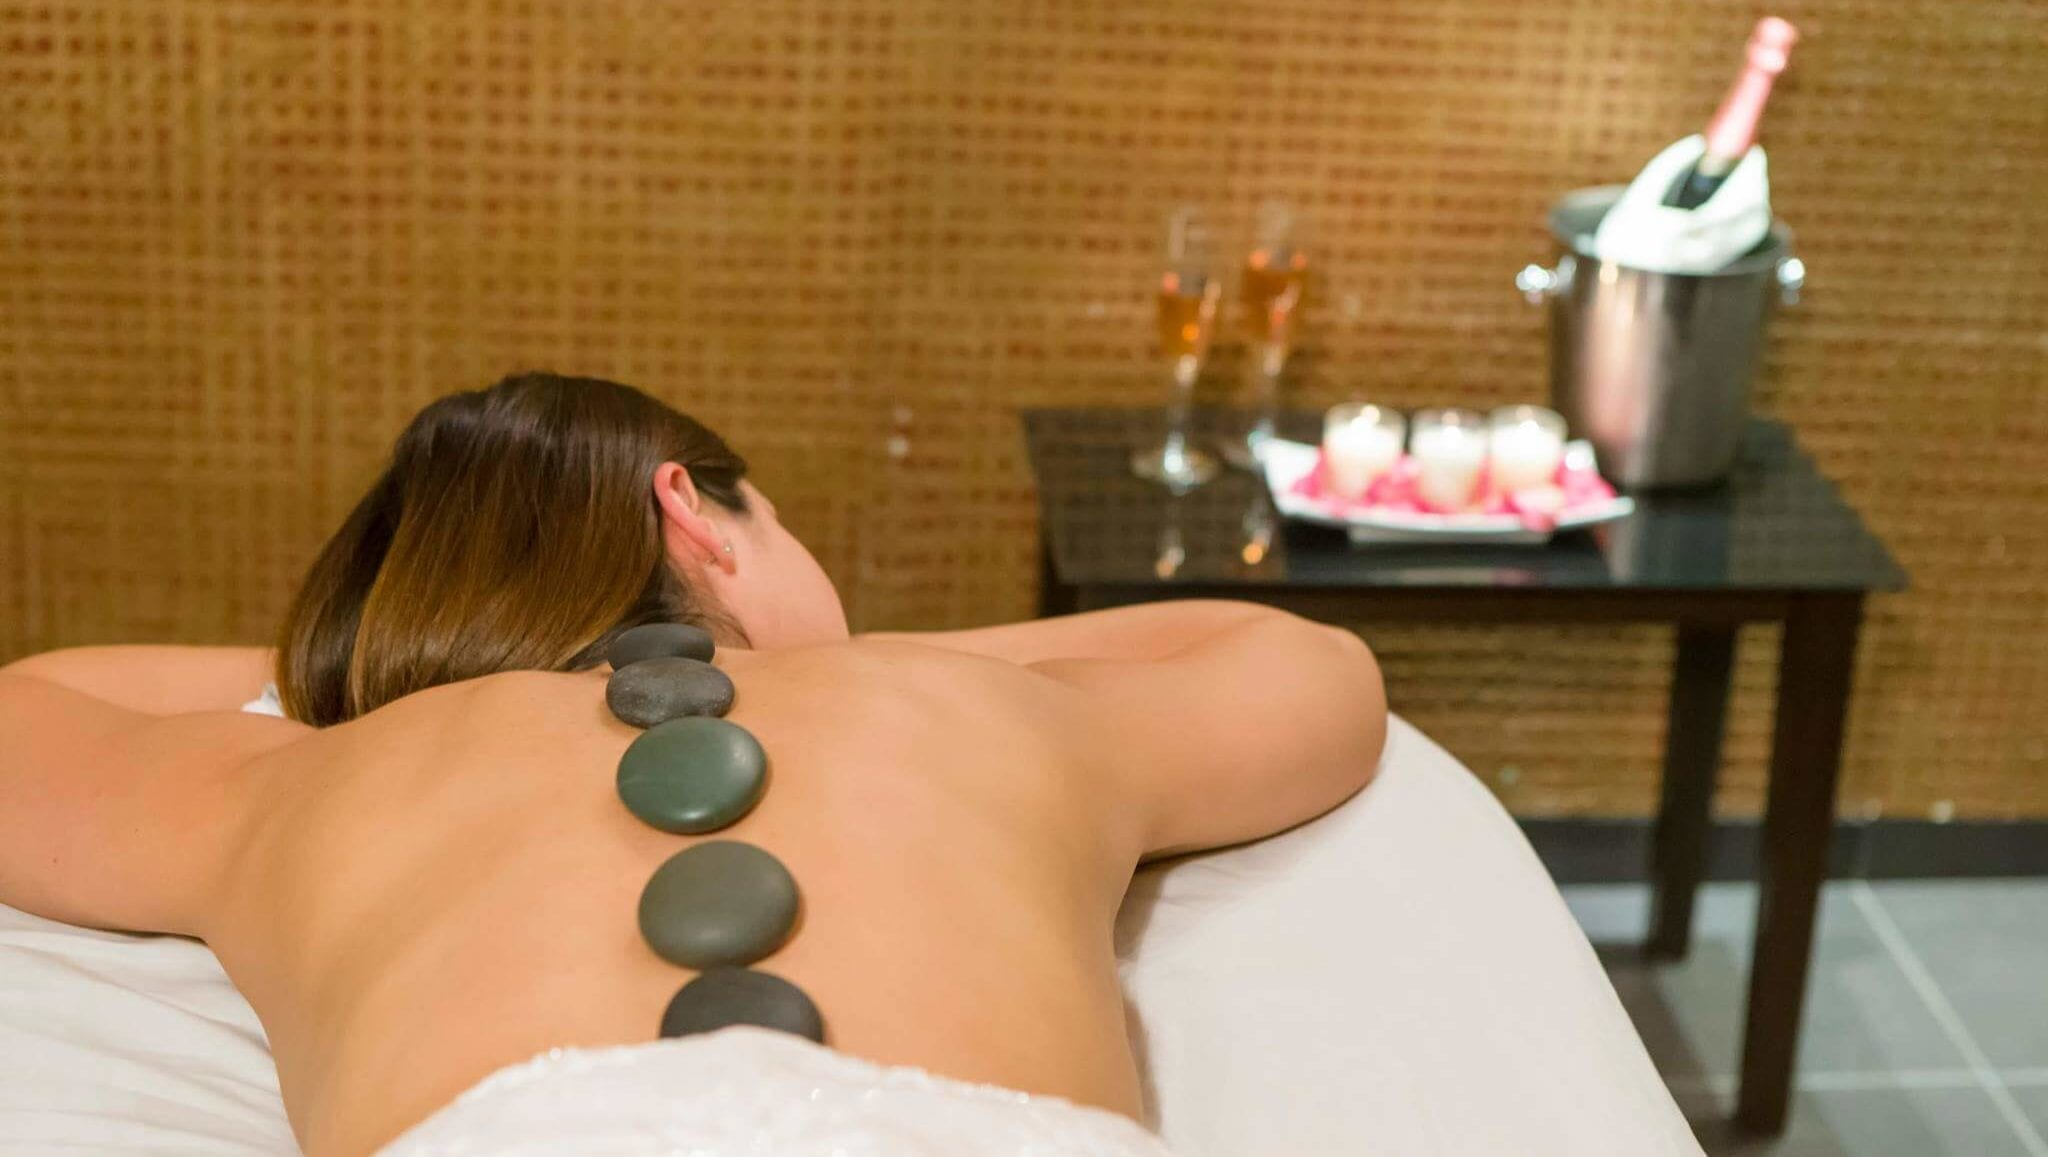 pampered at the spa with hot stone massage